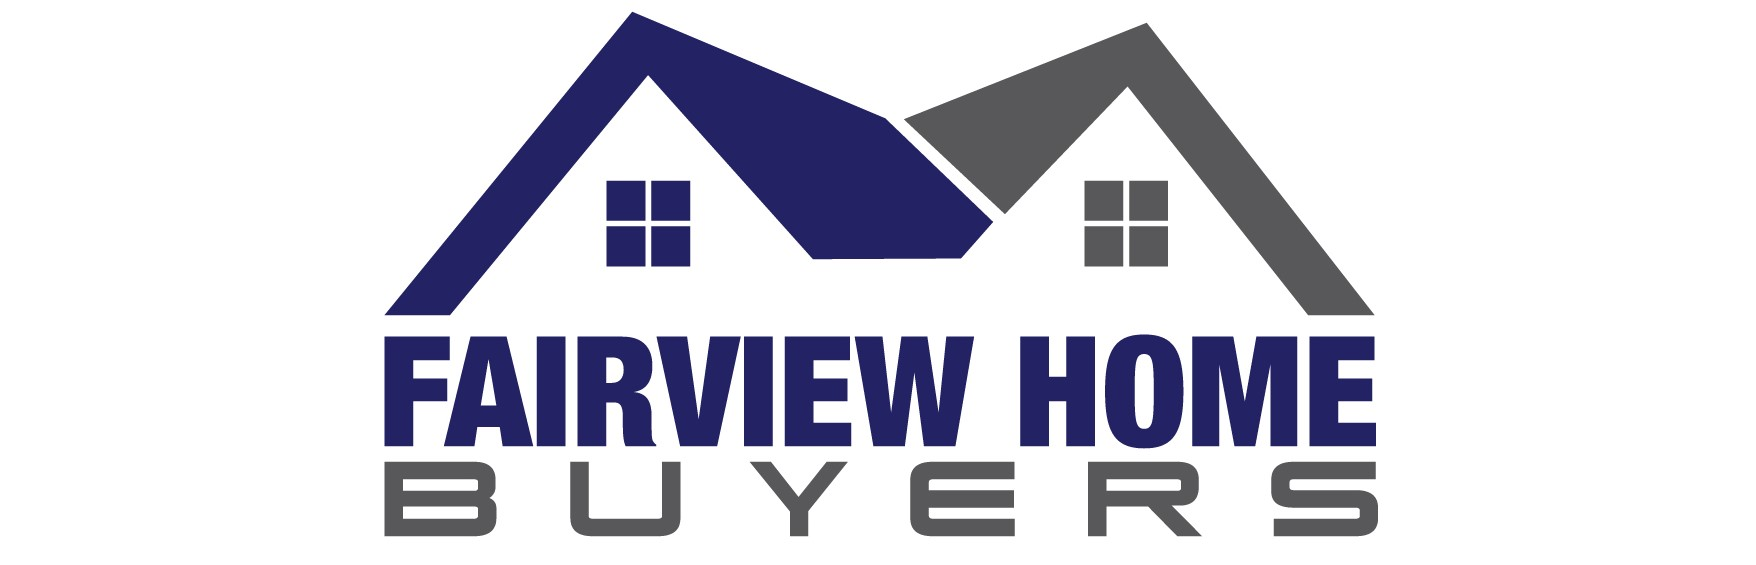 Fairview Home Buyers